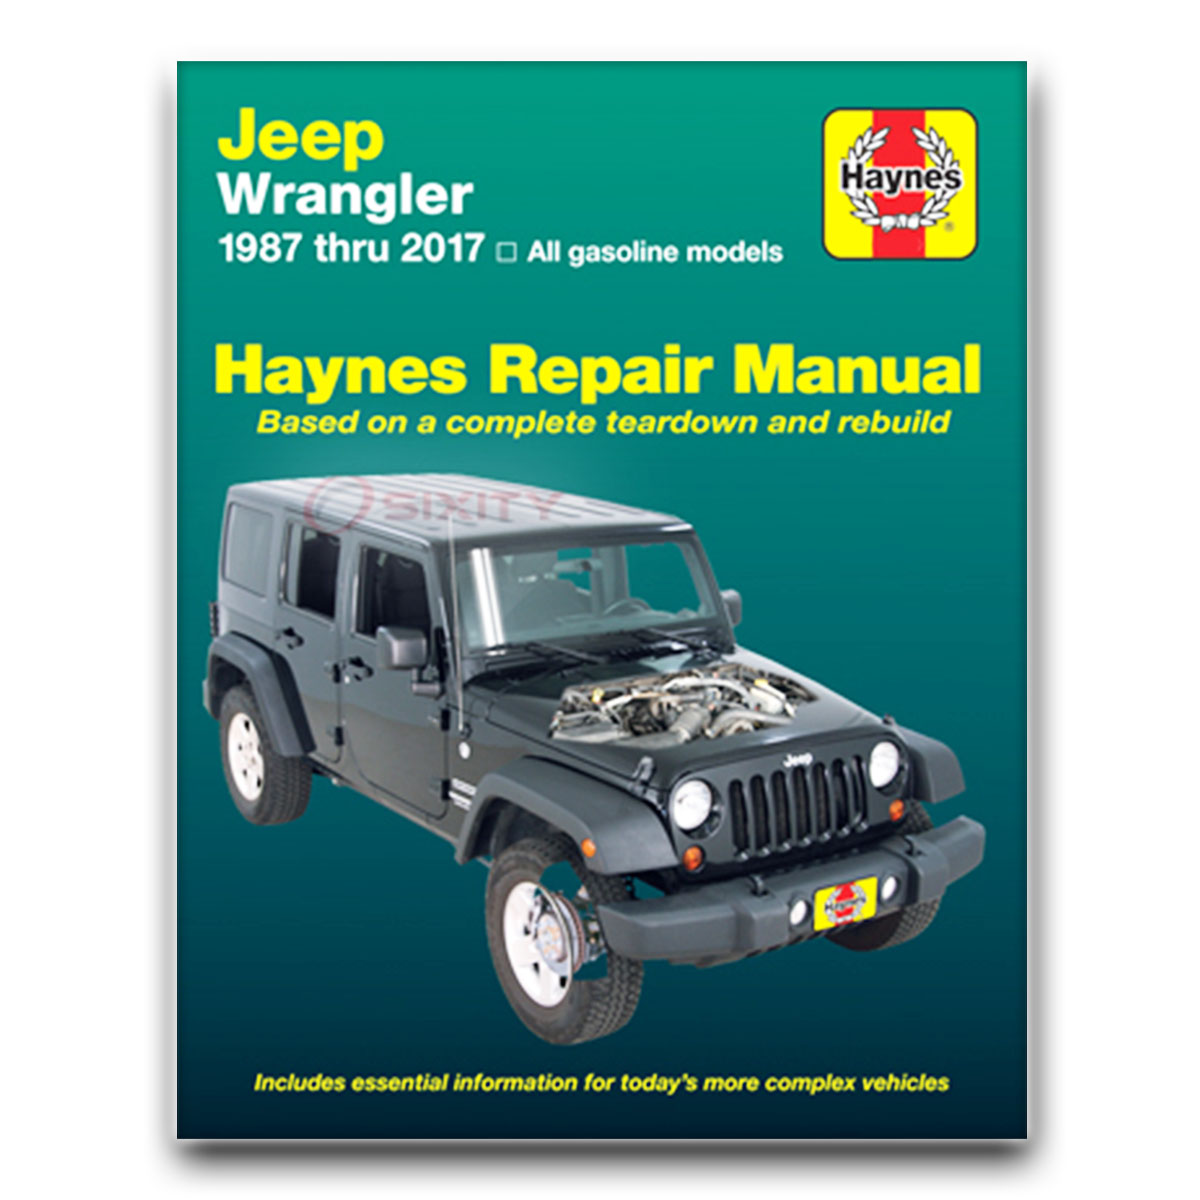 jeep wrangler haynes repair manual s sahara unlimited base renegade rh ebay com Five-Star Rating Five Stars Logo